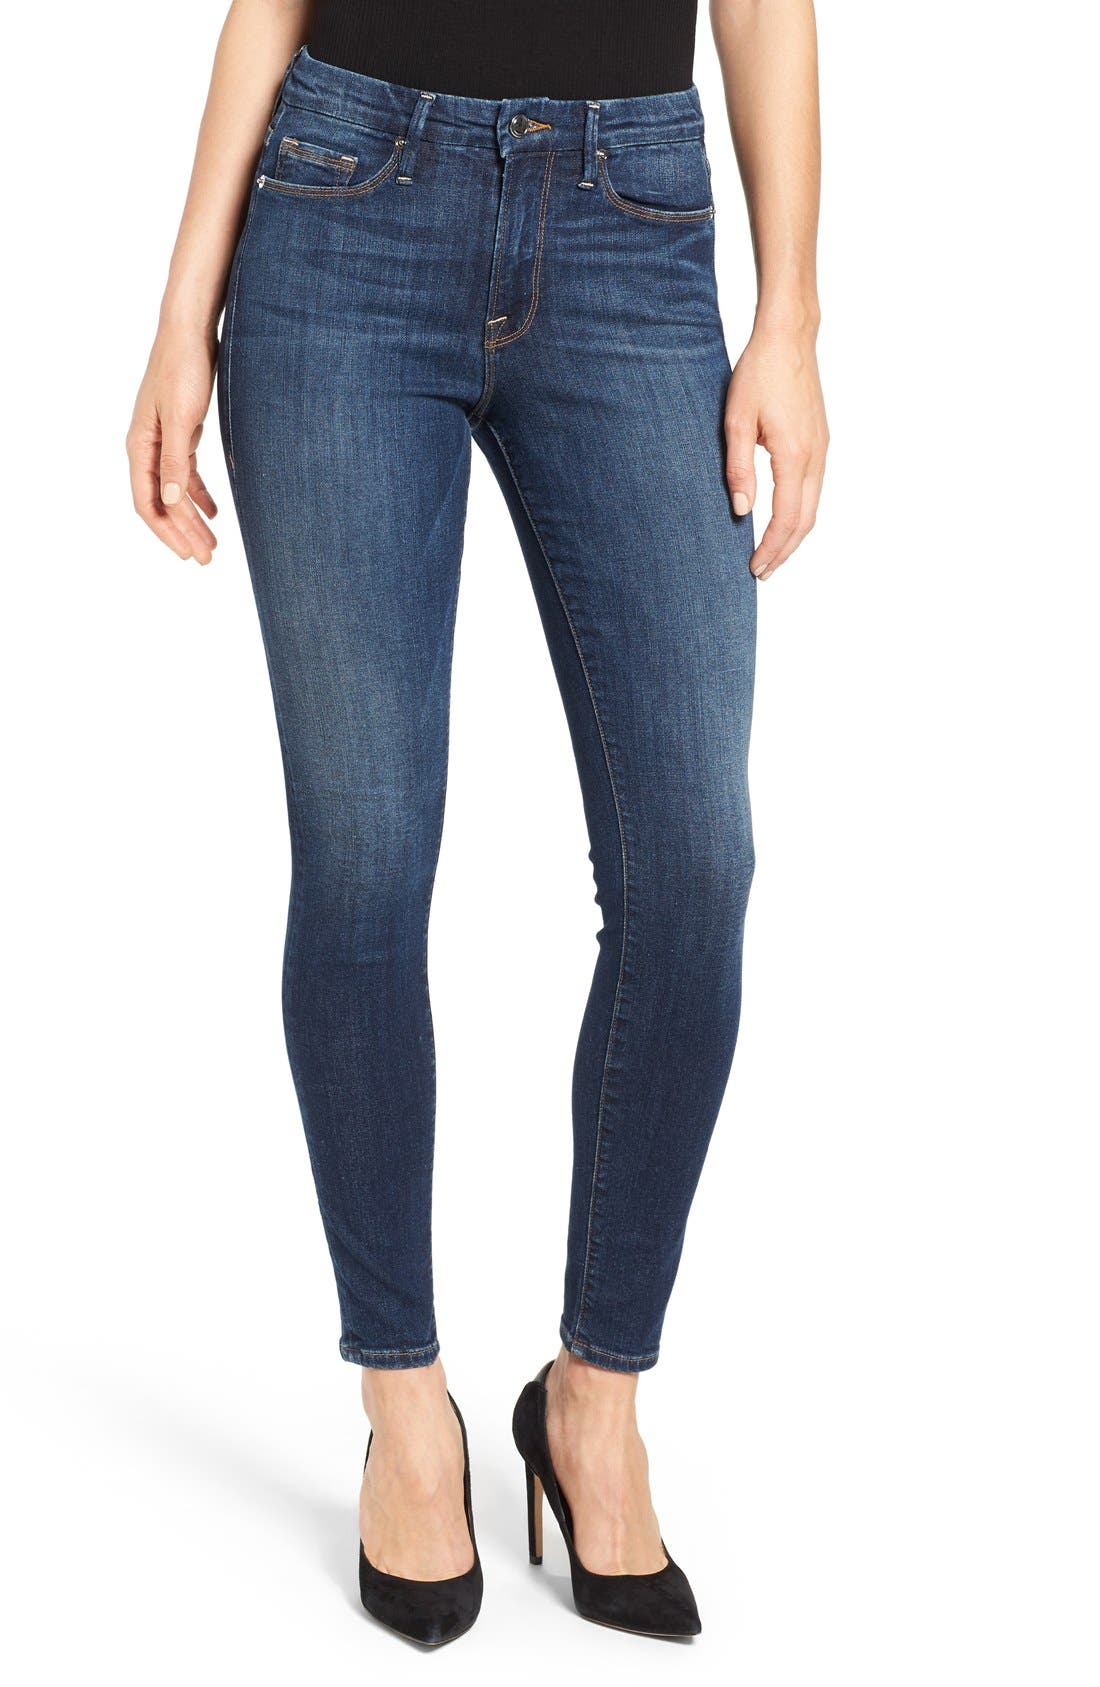 Alternate Image 1 Selected - Good American Good Legs High Rise Skinny Jeans (Blue 004) (Regular & Plus Size)